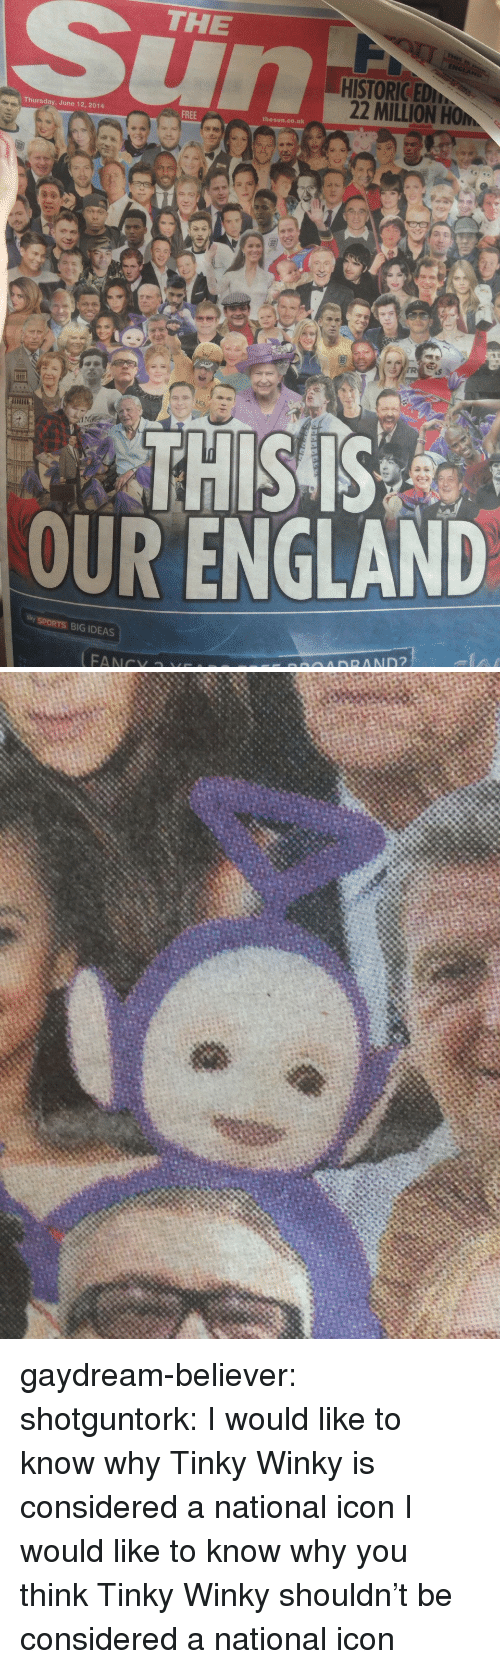 Sky Sports: THE  HISTORICED  22 MILLION HOM  Thursday, June 12, 2014  FREE  thesun.co.uk  THISS  OUR ENGLAND  sky SPORTS BIG IDEAS gaydream-believer:  shotguntork:  I would like to know why Tinky Winky is considered a national icon  I would like to know why you think Tinky Winky shouldn't be considered a national icon